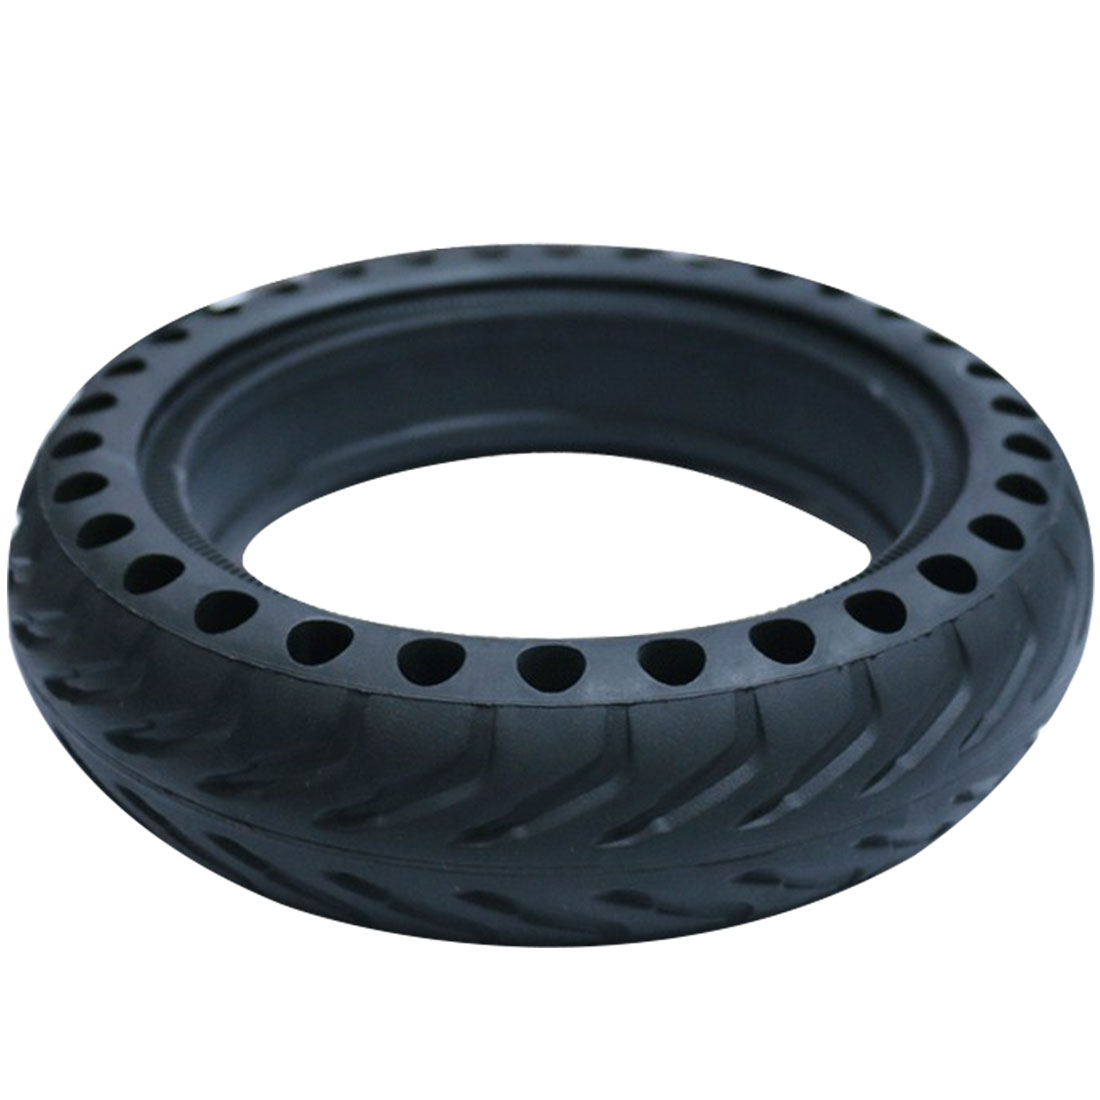 Hot Solid Hole Tires Shock Absorber Non Pneumatic Tyre Damping Rubber Tyres Wheels for Xiaomi Mijia M365 Scooter Skateboard